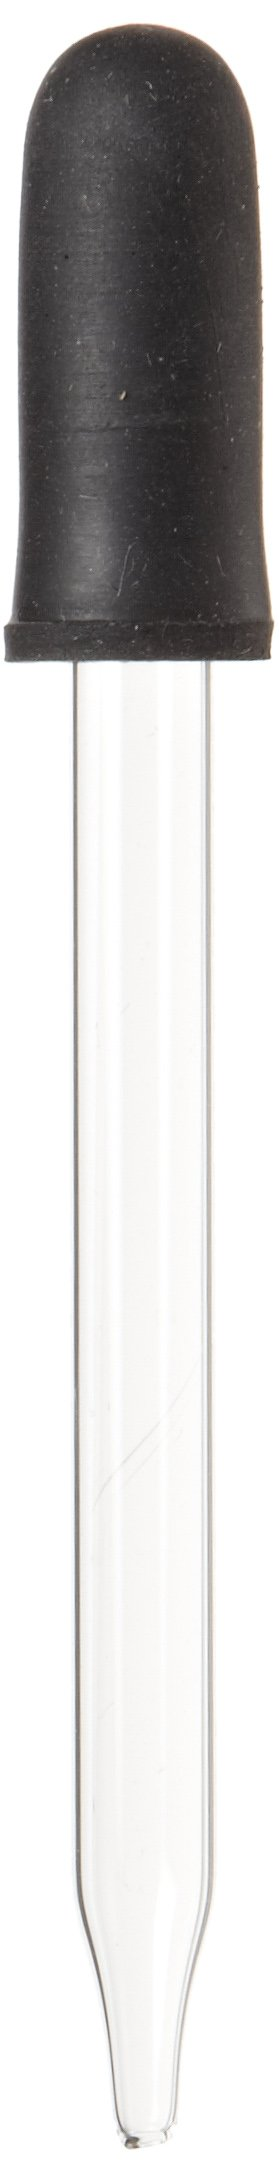 American Educational Glass Straight Medicine Dropper, 3'' Length (Pack of 1000)